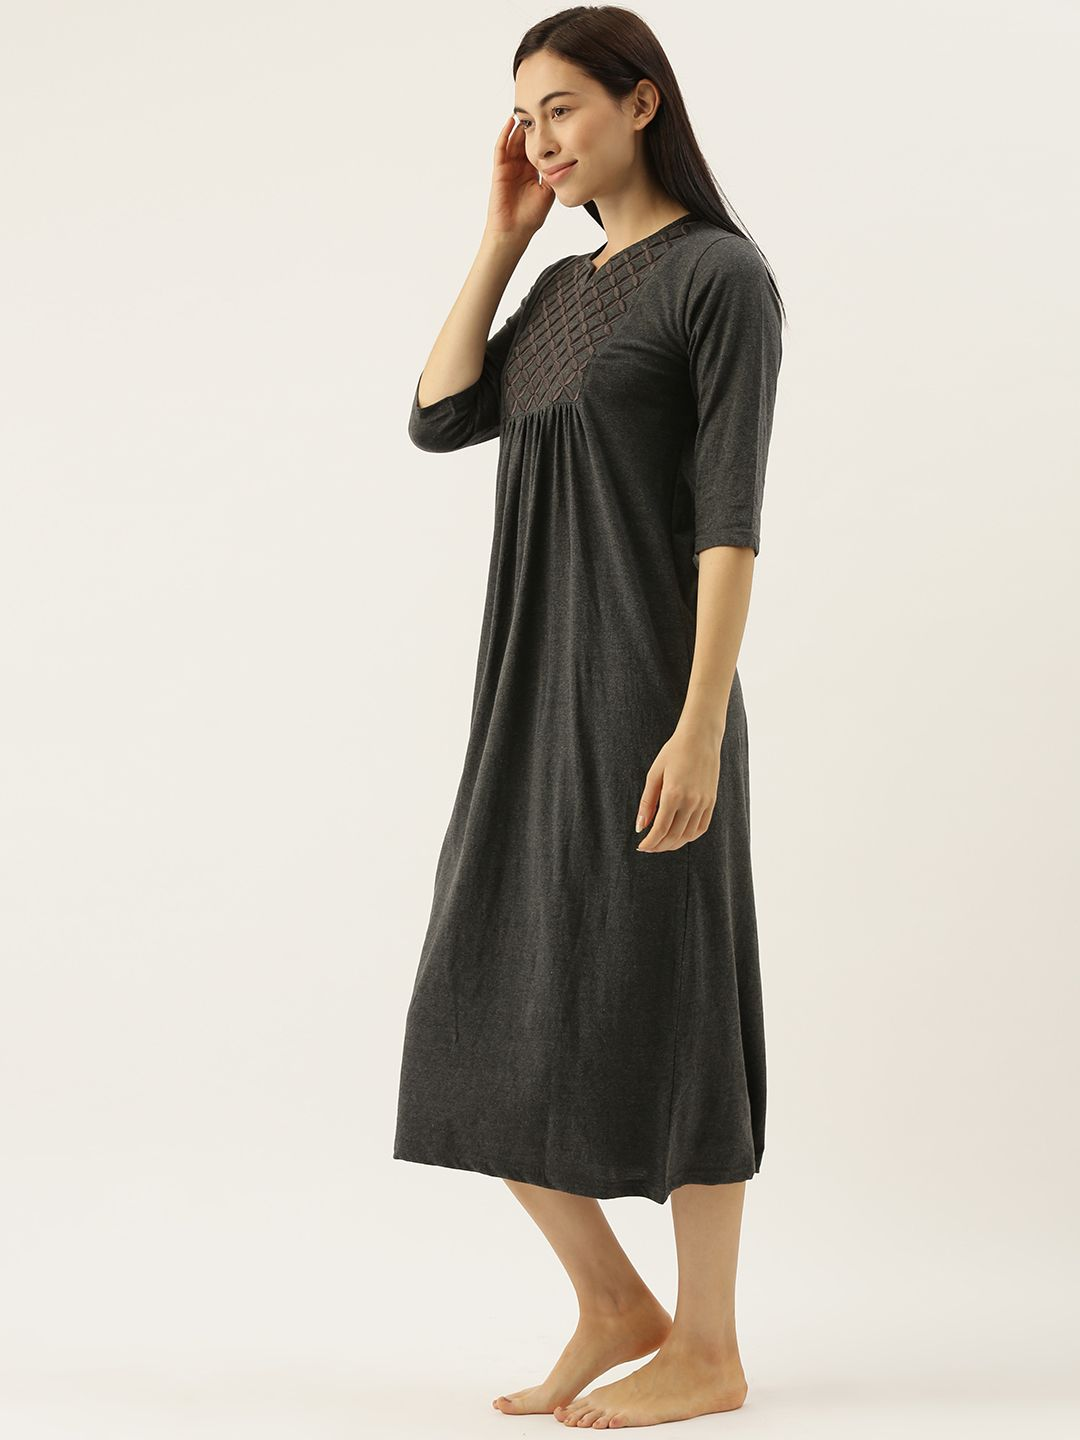 Charcoal Night Dress with Geometric Embroidery